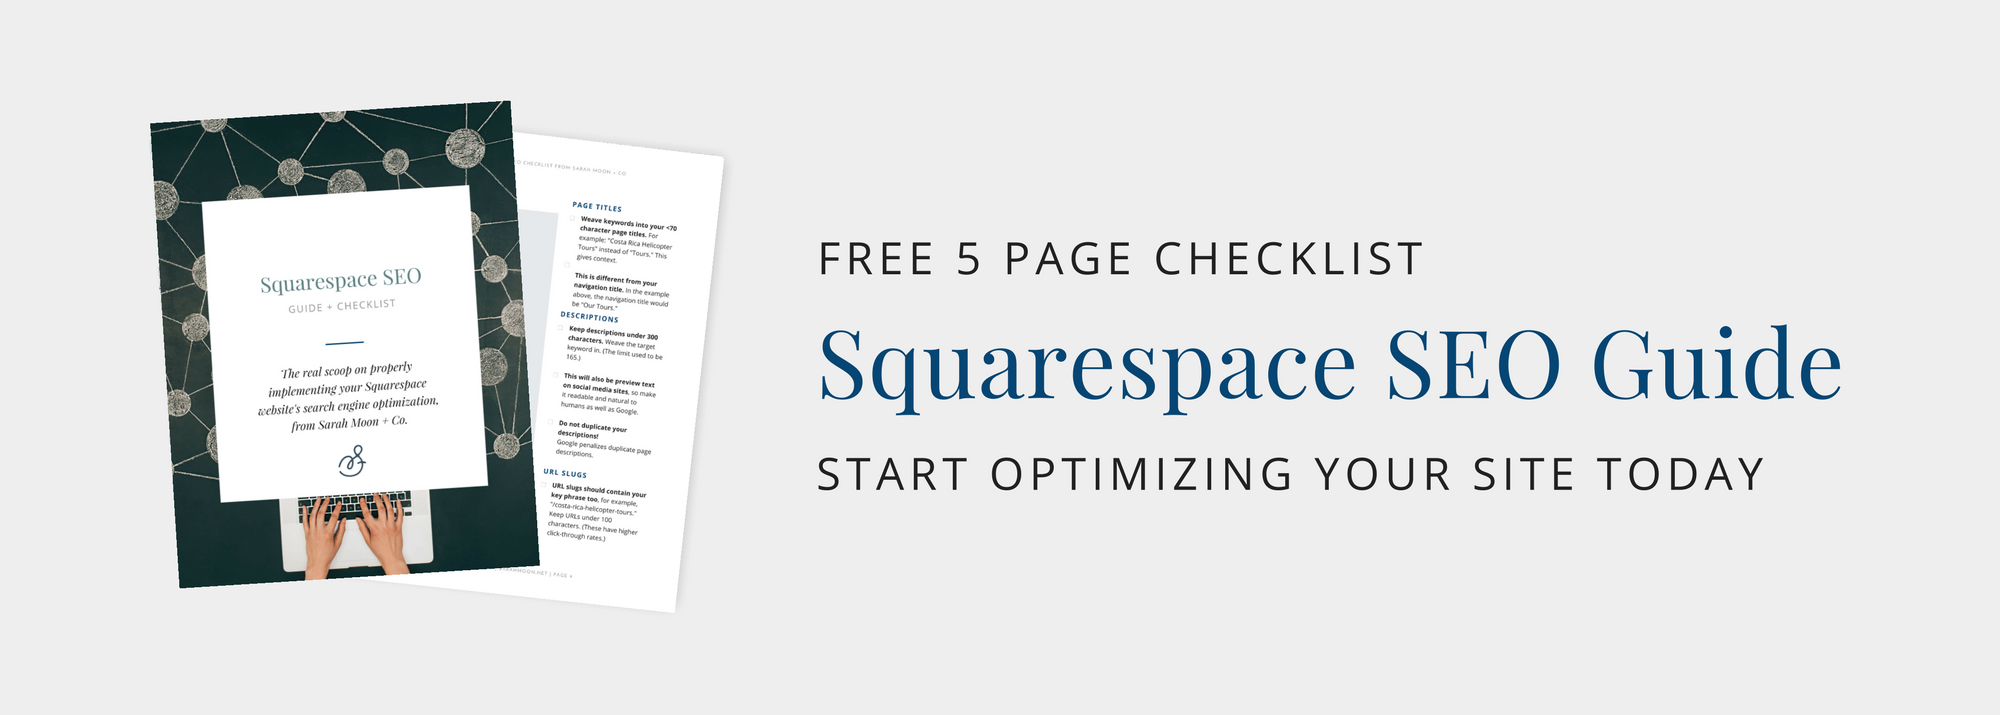 Get your Squarespace SEO guidebook from Sarah Moon + Co!